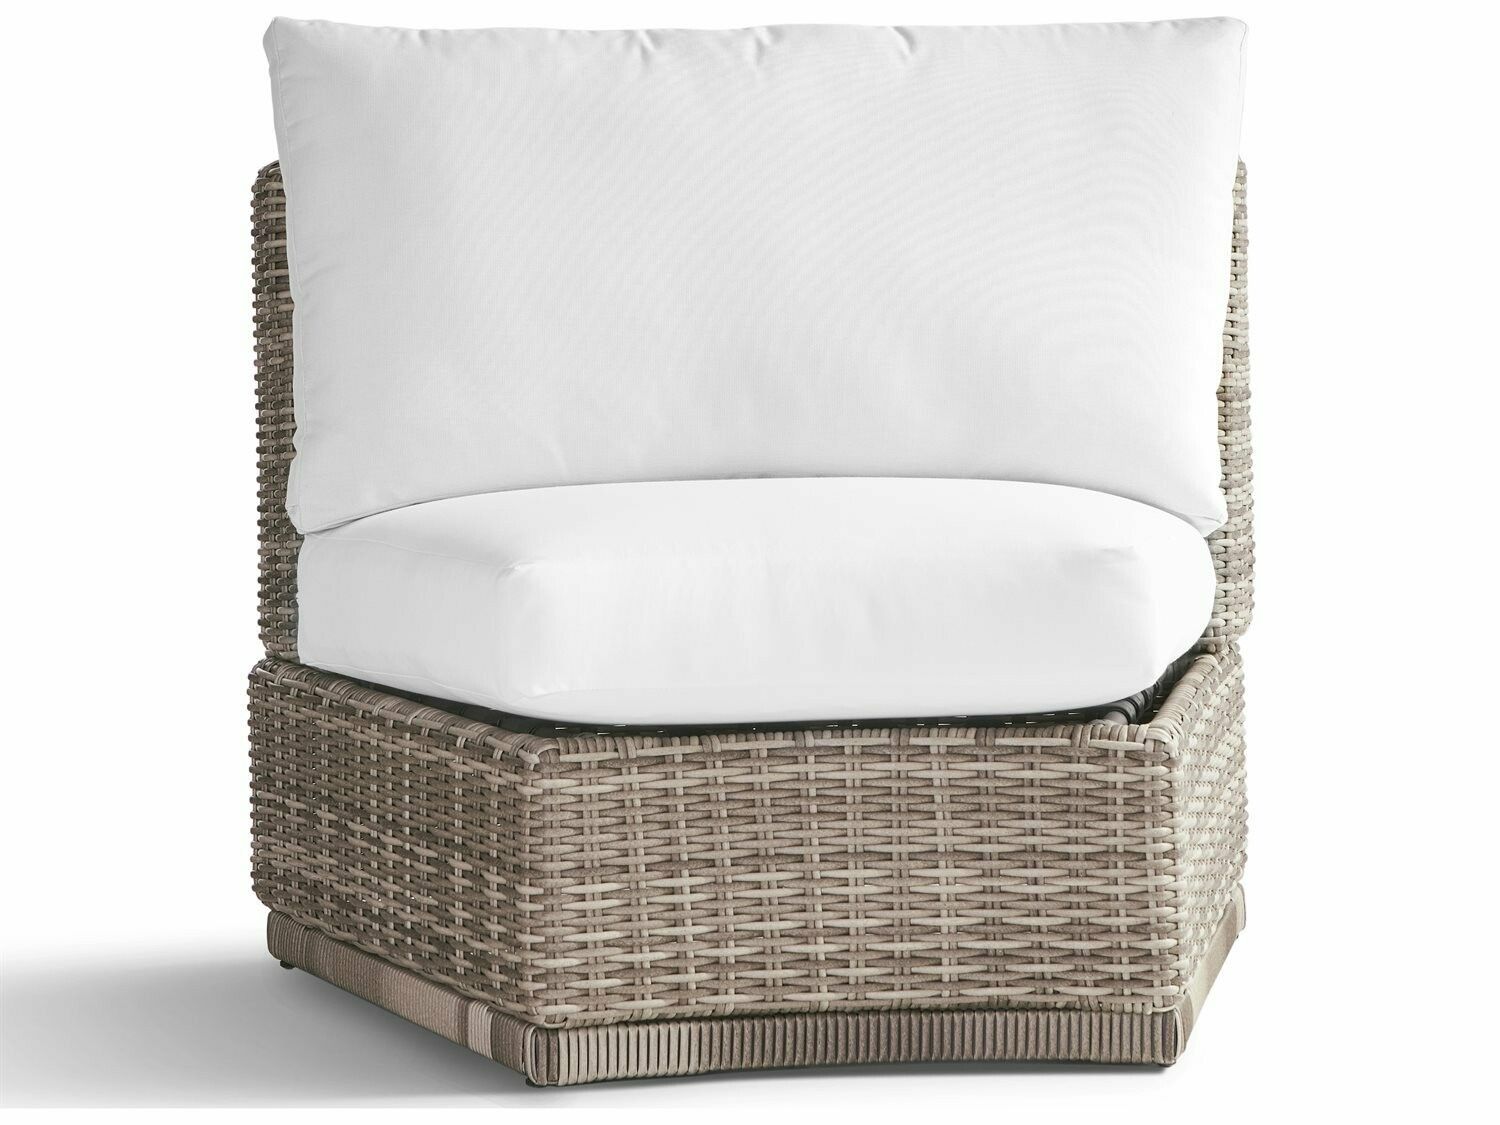 South Sea Rattan Luna Cove Wicker Curved Corner Lounge Chair in Scatter Back